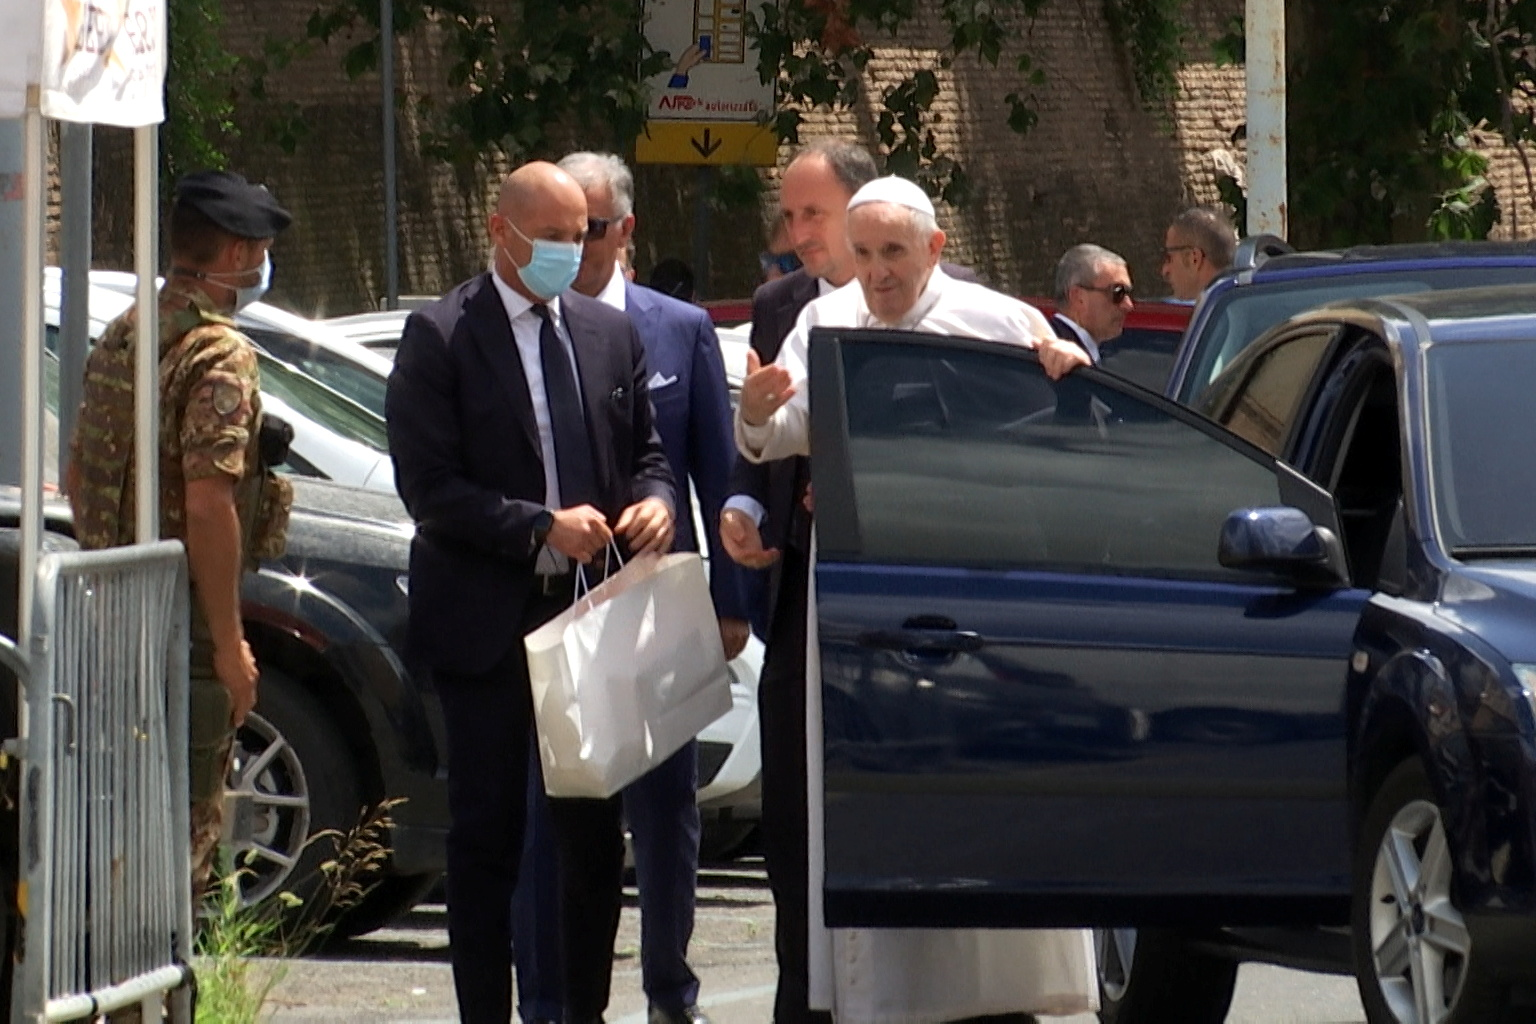 Pope Francis leaves the car to greet policemen before entering the Vatican after being discharged from Gemelli hospital in this screengrab taken from a video in Rome, Italy, July 14, 2021. Cristiano Corvino/REUTERS TV via REUTERS